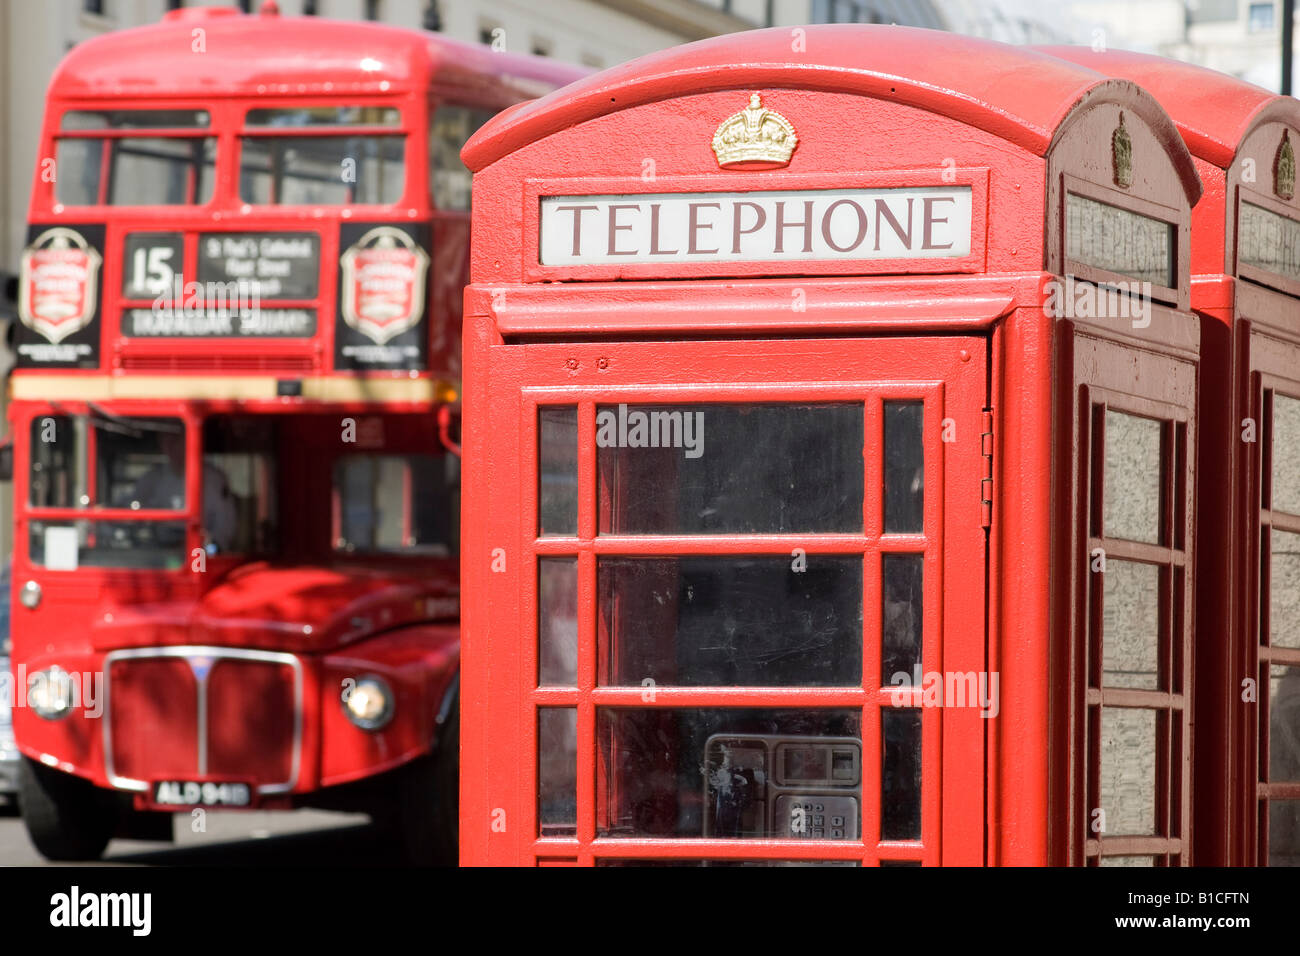 Red phone box and doubledecker bus. Fleet Street, London, England - Stock Image